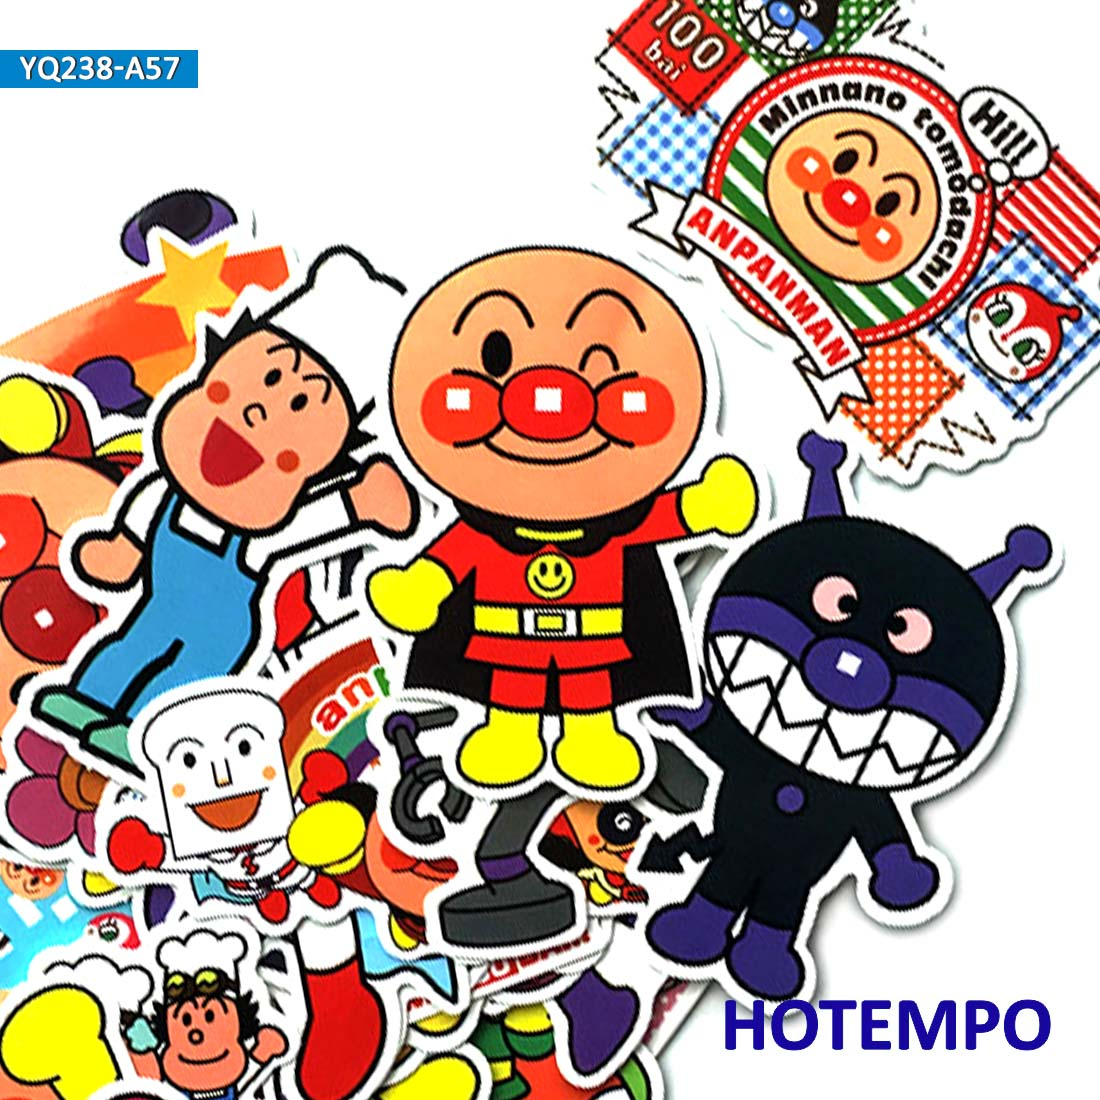 57pcs Kawaii Anime Anpanman Dokin-chan Baikinman Stickers For DIY Mobile Phone Laptop Luggage Suitcase Skateboard Decal Stickers